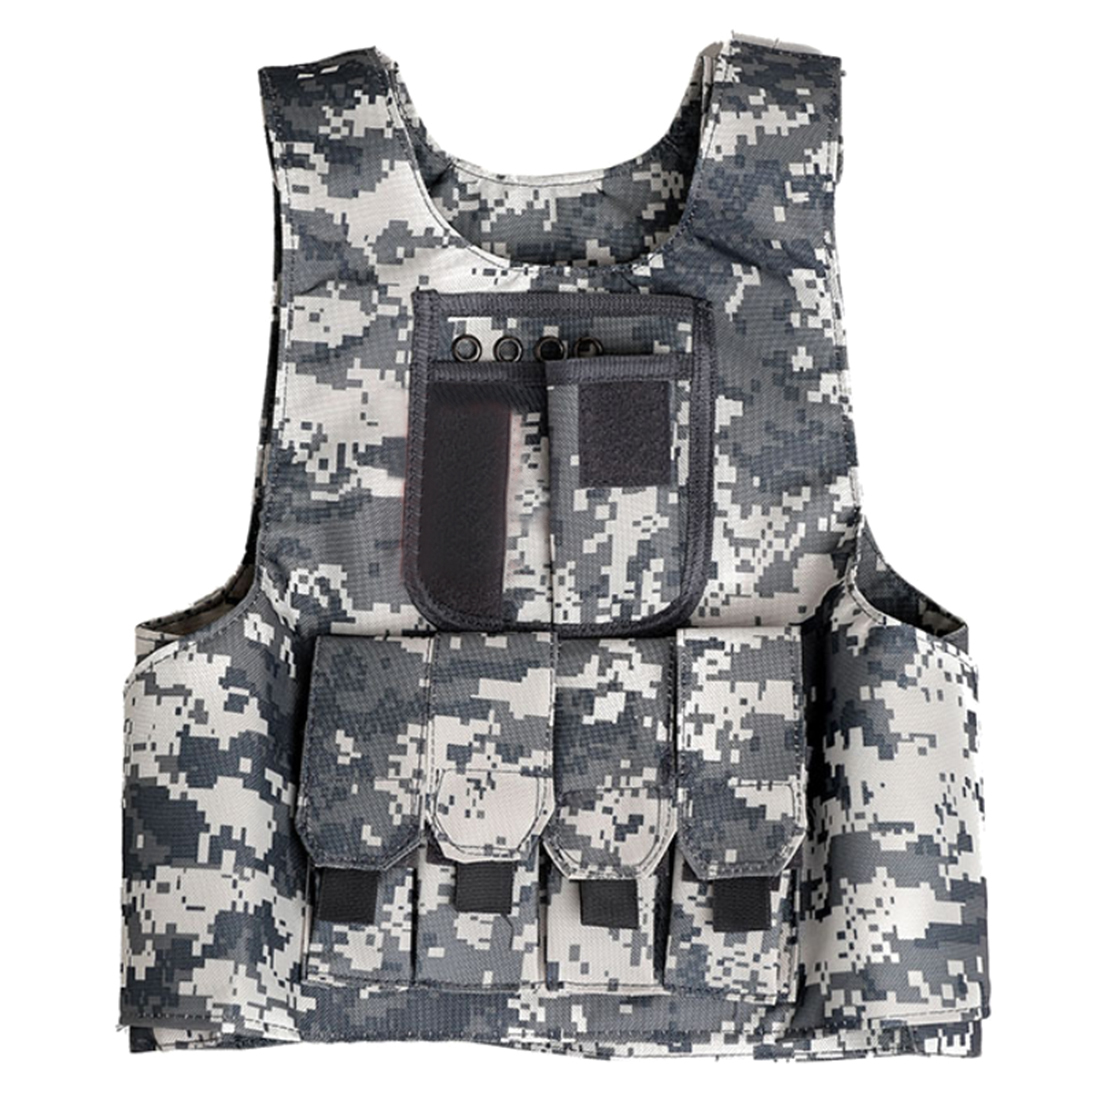 2019 New Arrive Summer Children Level 3 Tactical Vest  CS Protective Vest For 12-15 Years Old- Camouflage S Outdoor Hunting